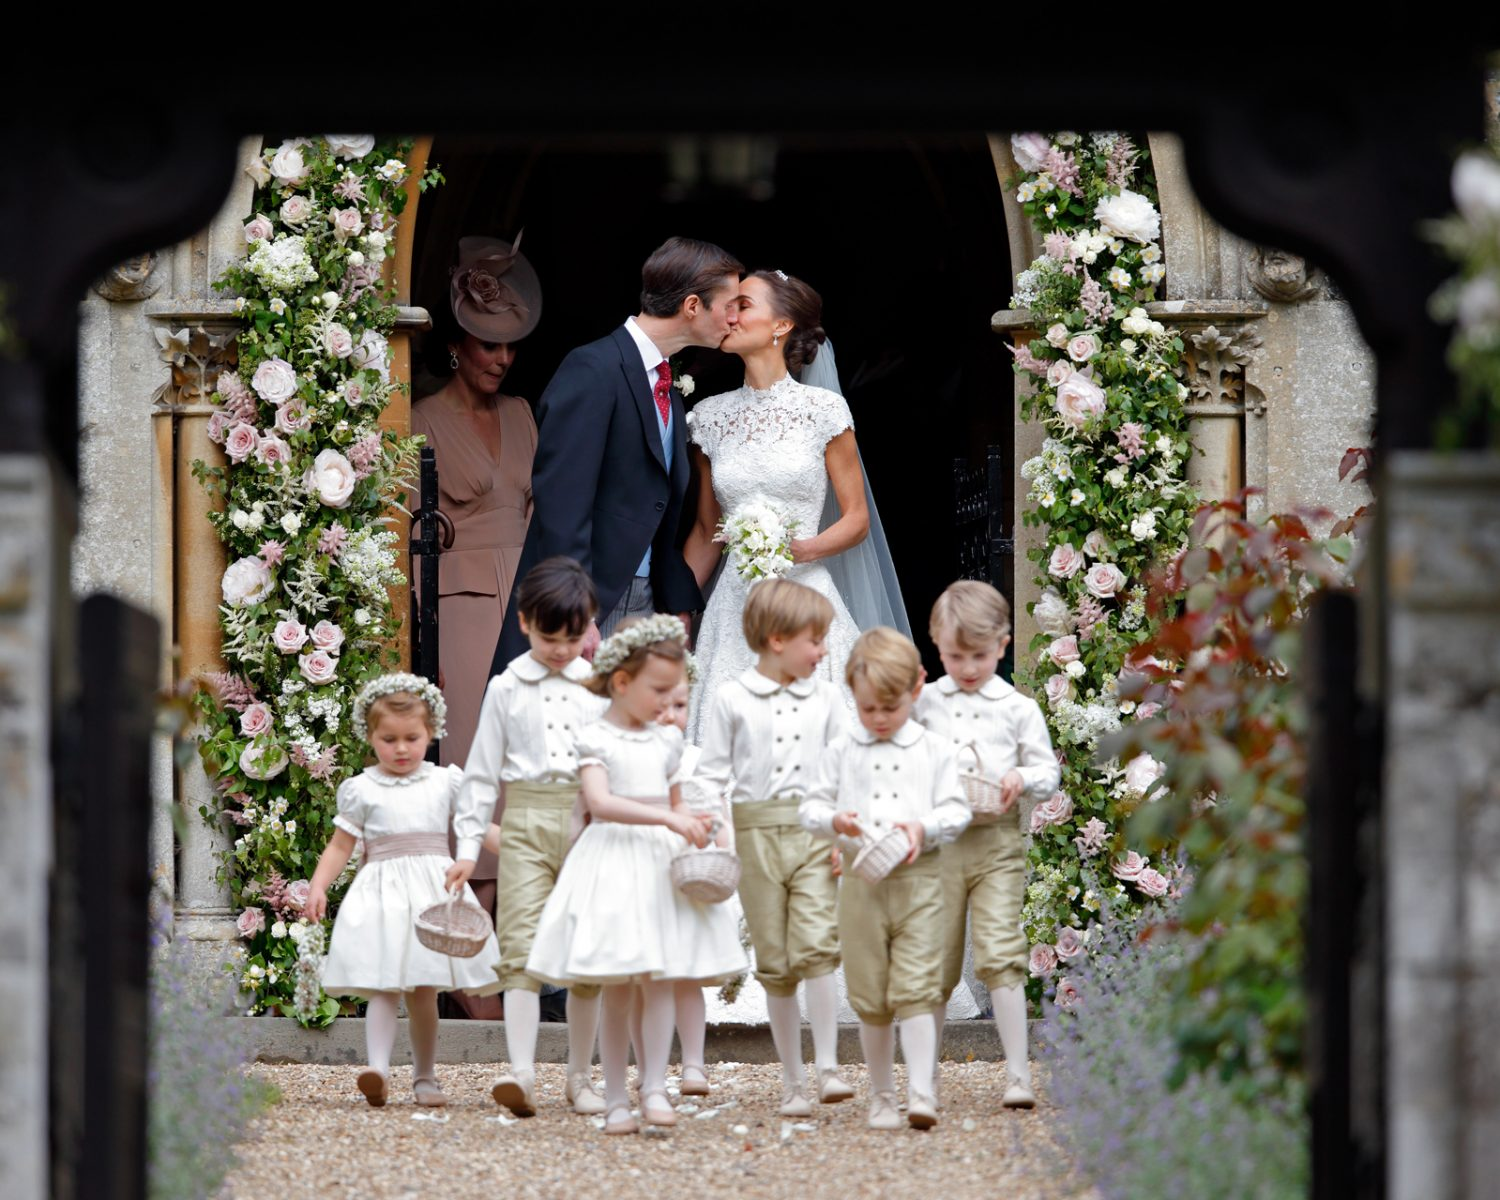 Pippa Middleton Marries James Matthews: Wedding Dress Photos